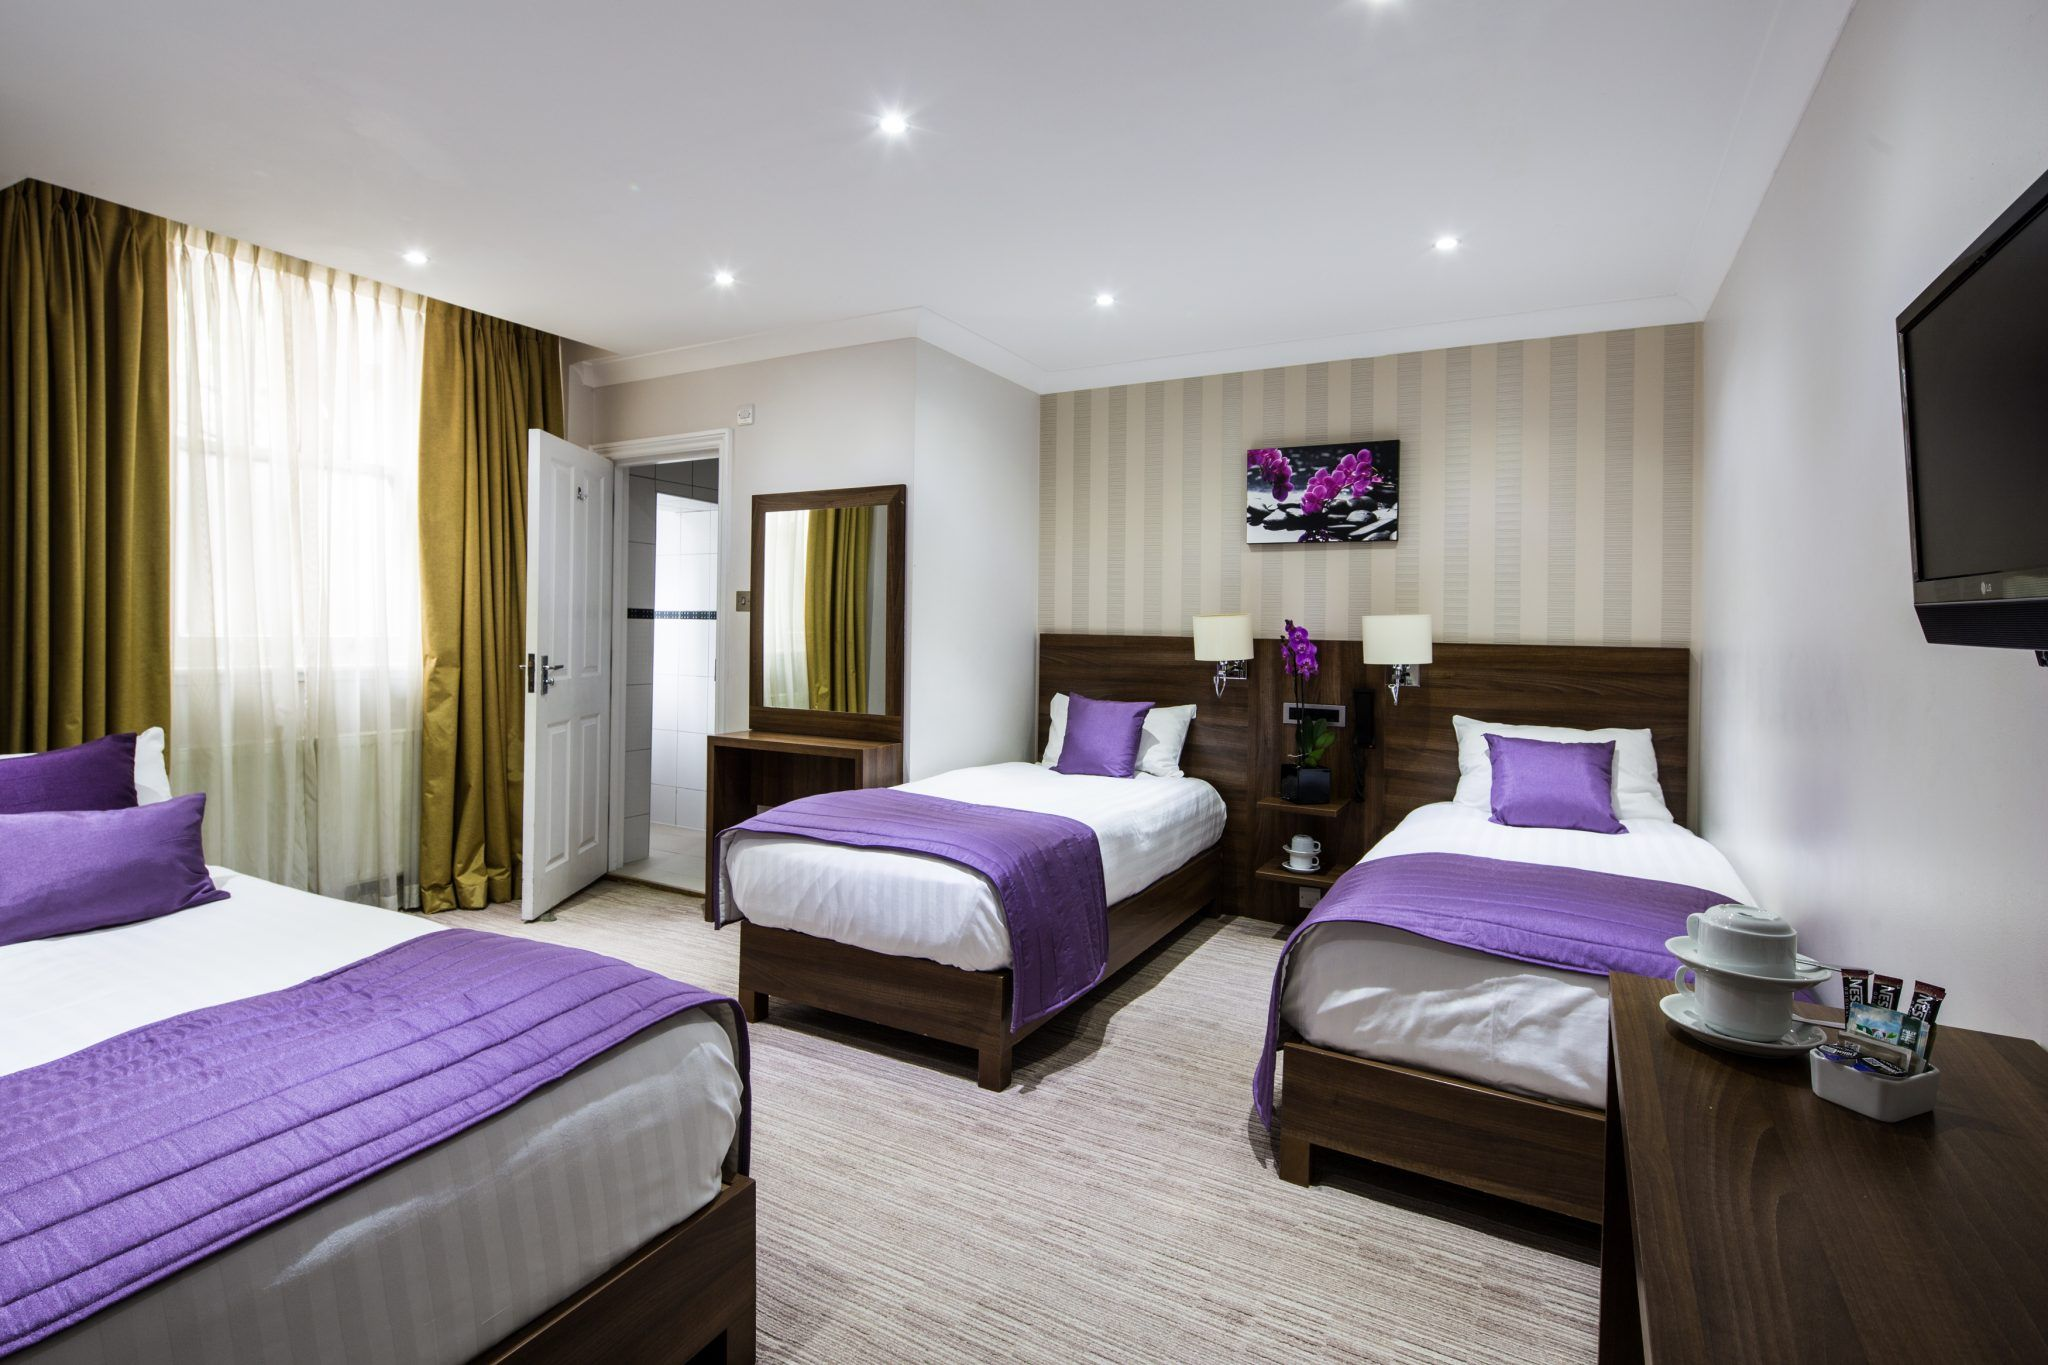 Living Room Vs Family Room What Is The Difference Family Room London House Hotel Room